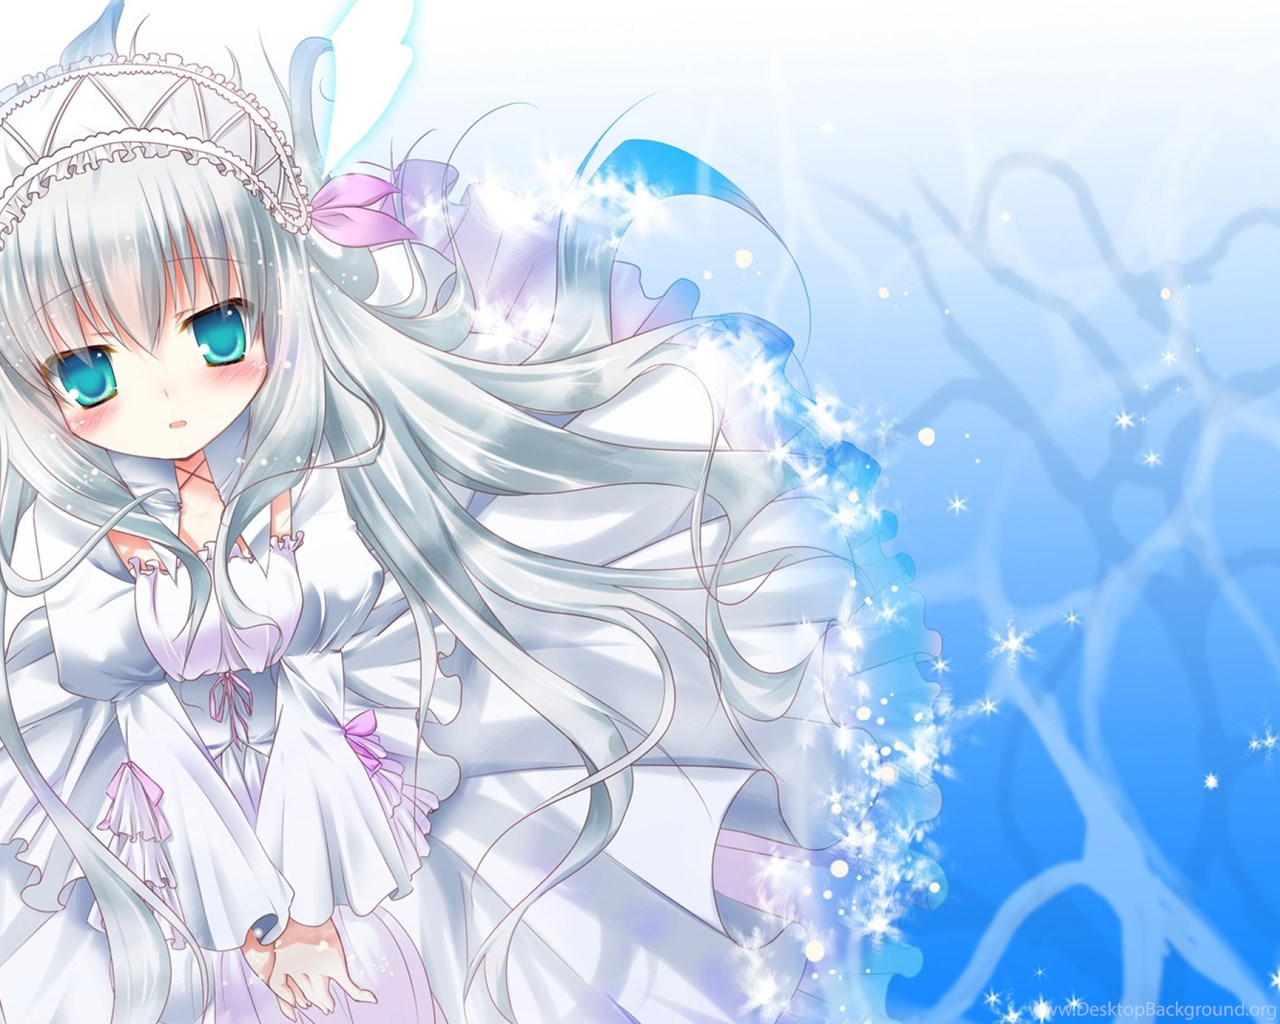 Download Wallpapers 2560x1440 Anime, Girl, Cute